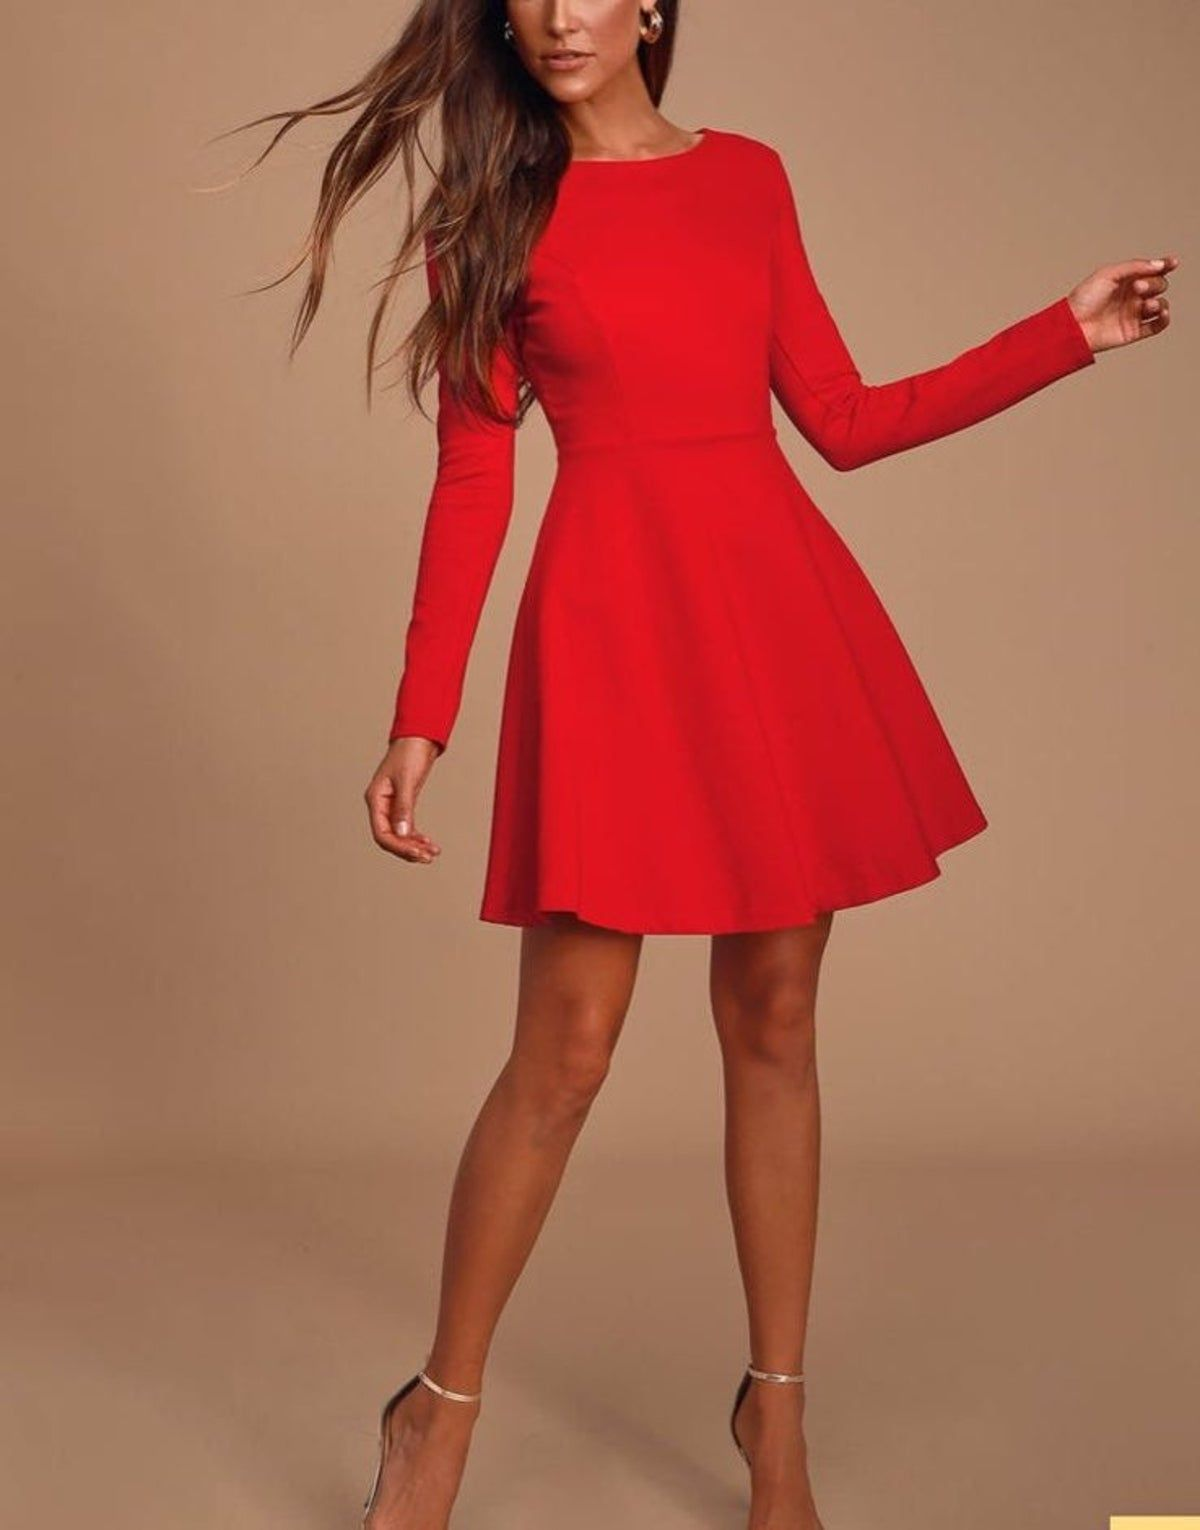 Lulu Rsquo S Forever Chic Red Dress In 2021 Red Long Sleeve Dress Red Dress Outfit Cute Red Dresses [ 1530 x 1200 Pixel ]